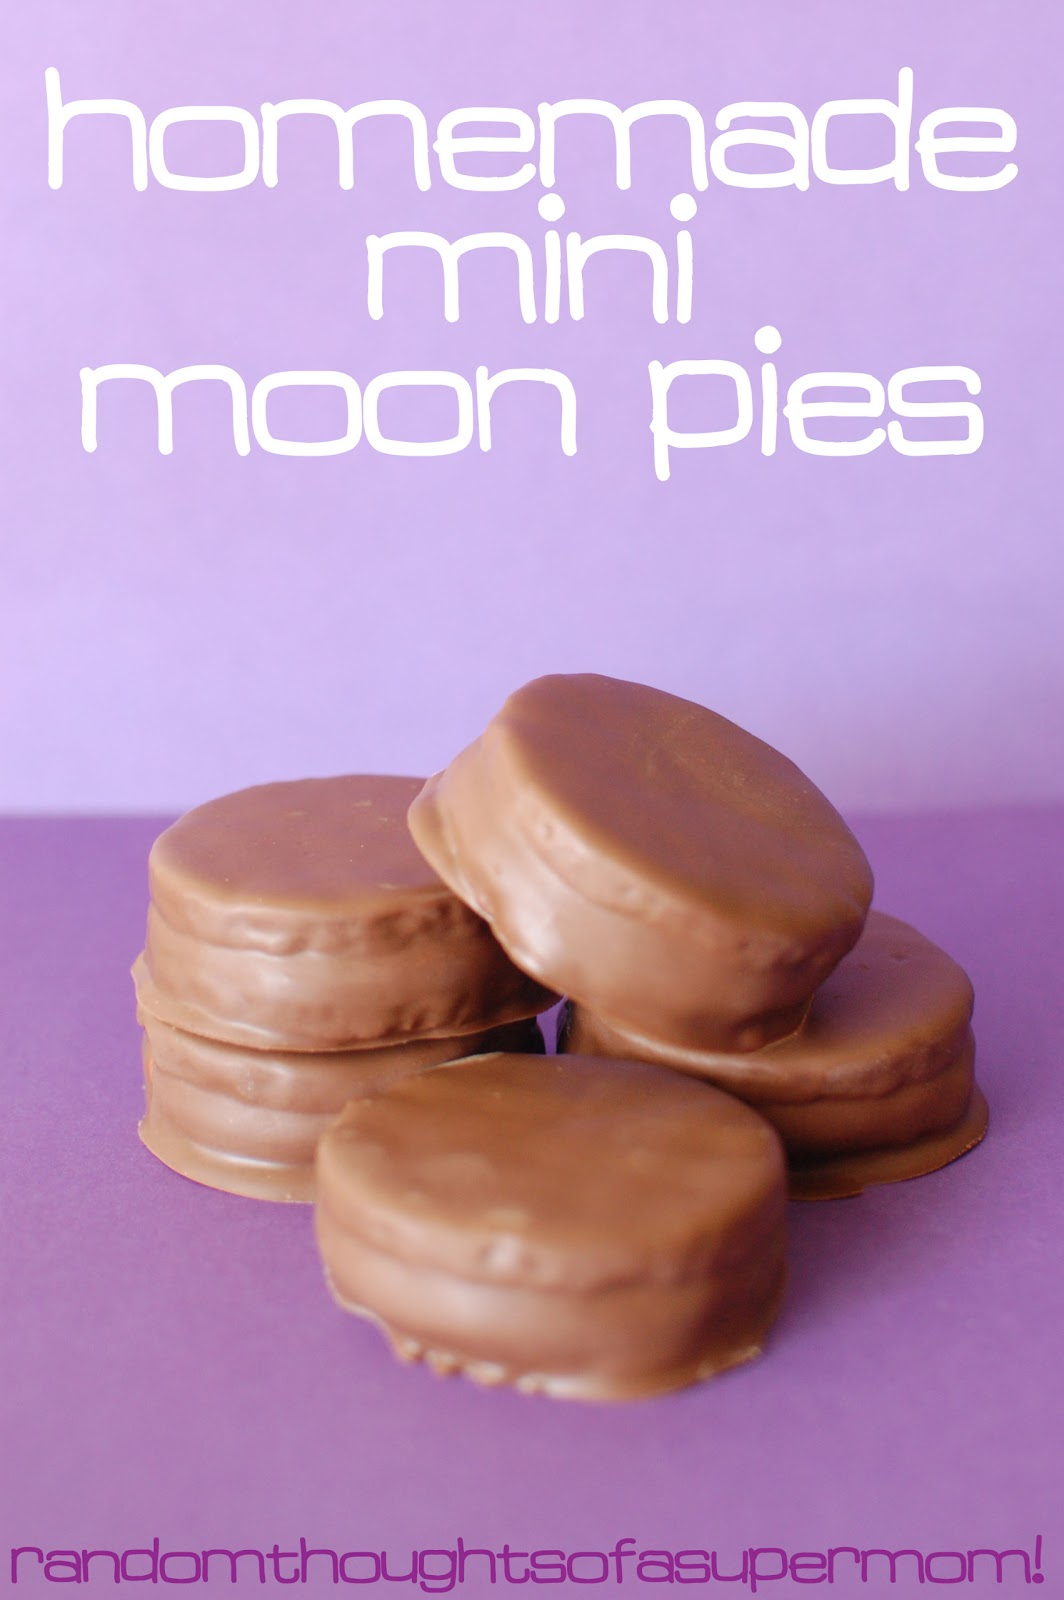 Mar 04, · Homemade moon pies are a traditional Southern treat. Marshmallows are nestled between two graham cracker cookies and covered in chocolate. Holy sinful goodness ya'll/5(2).